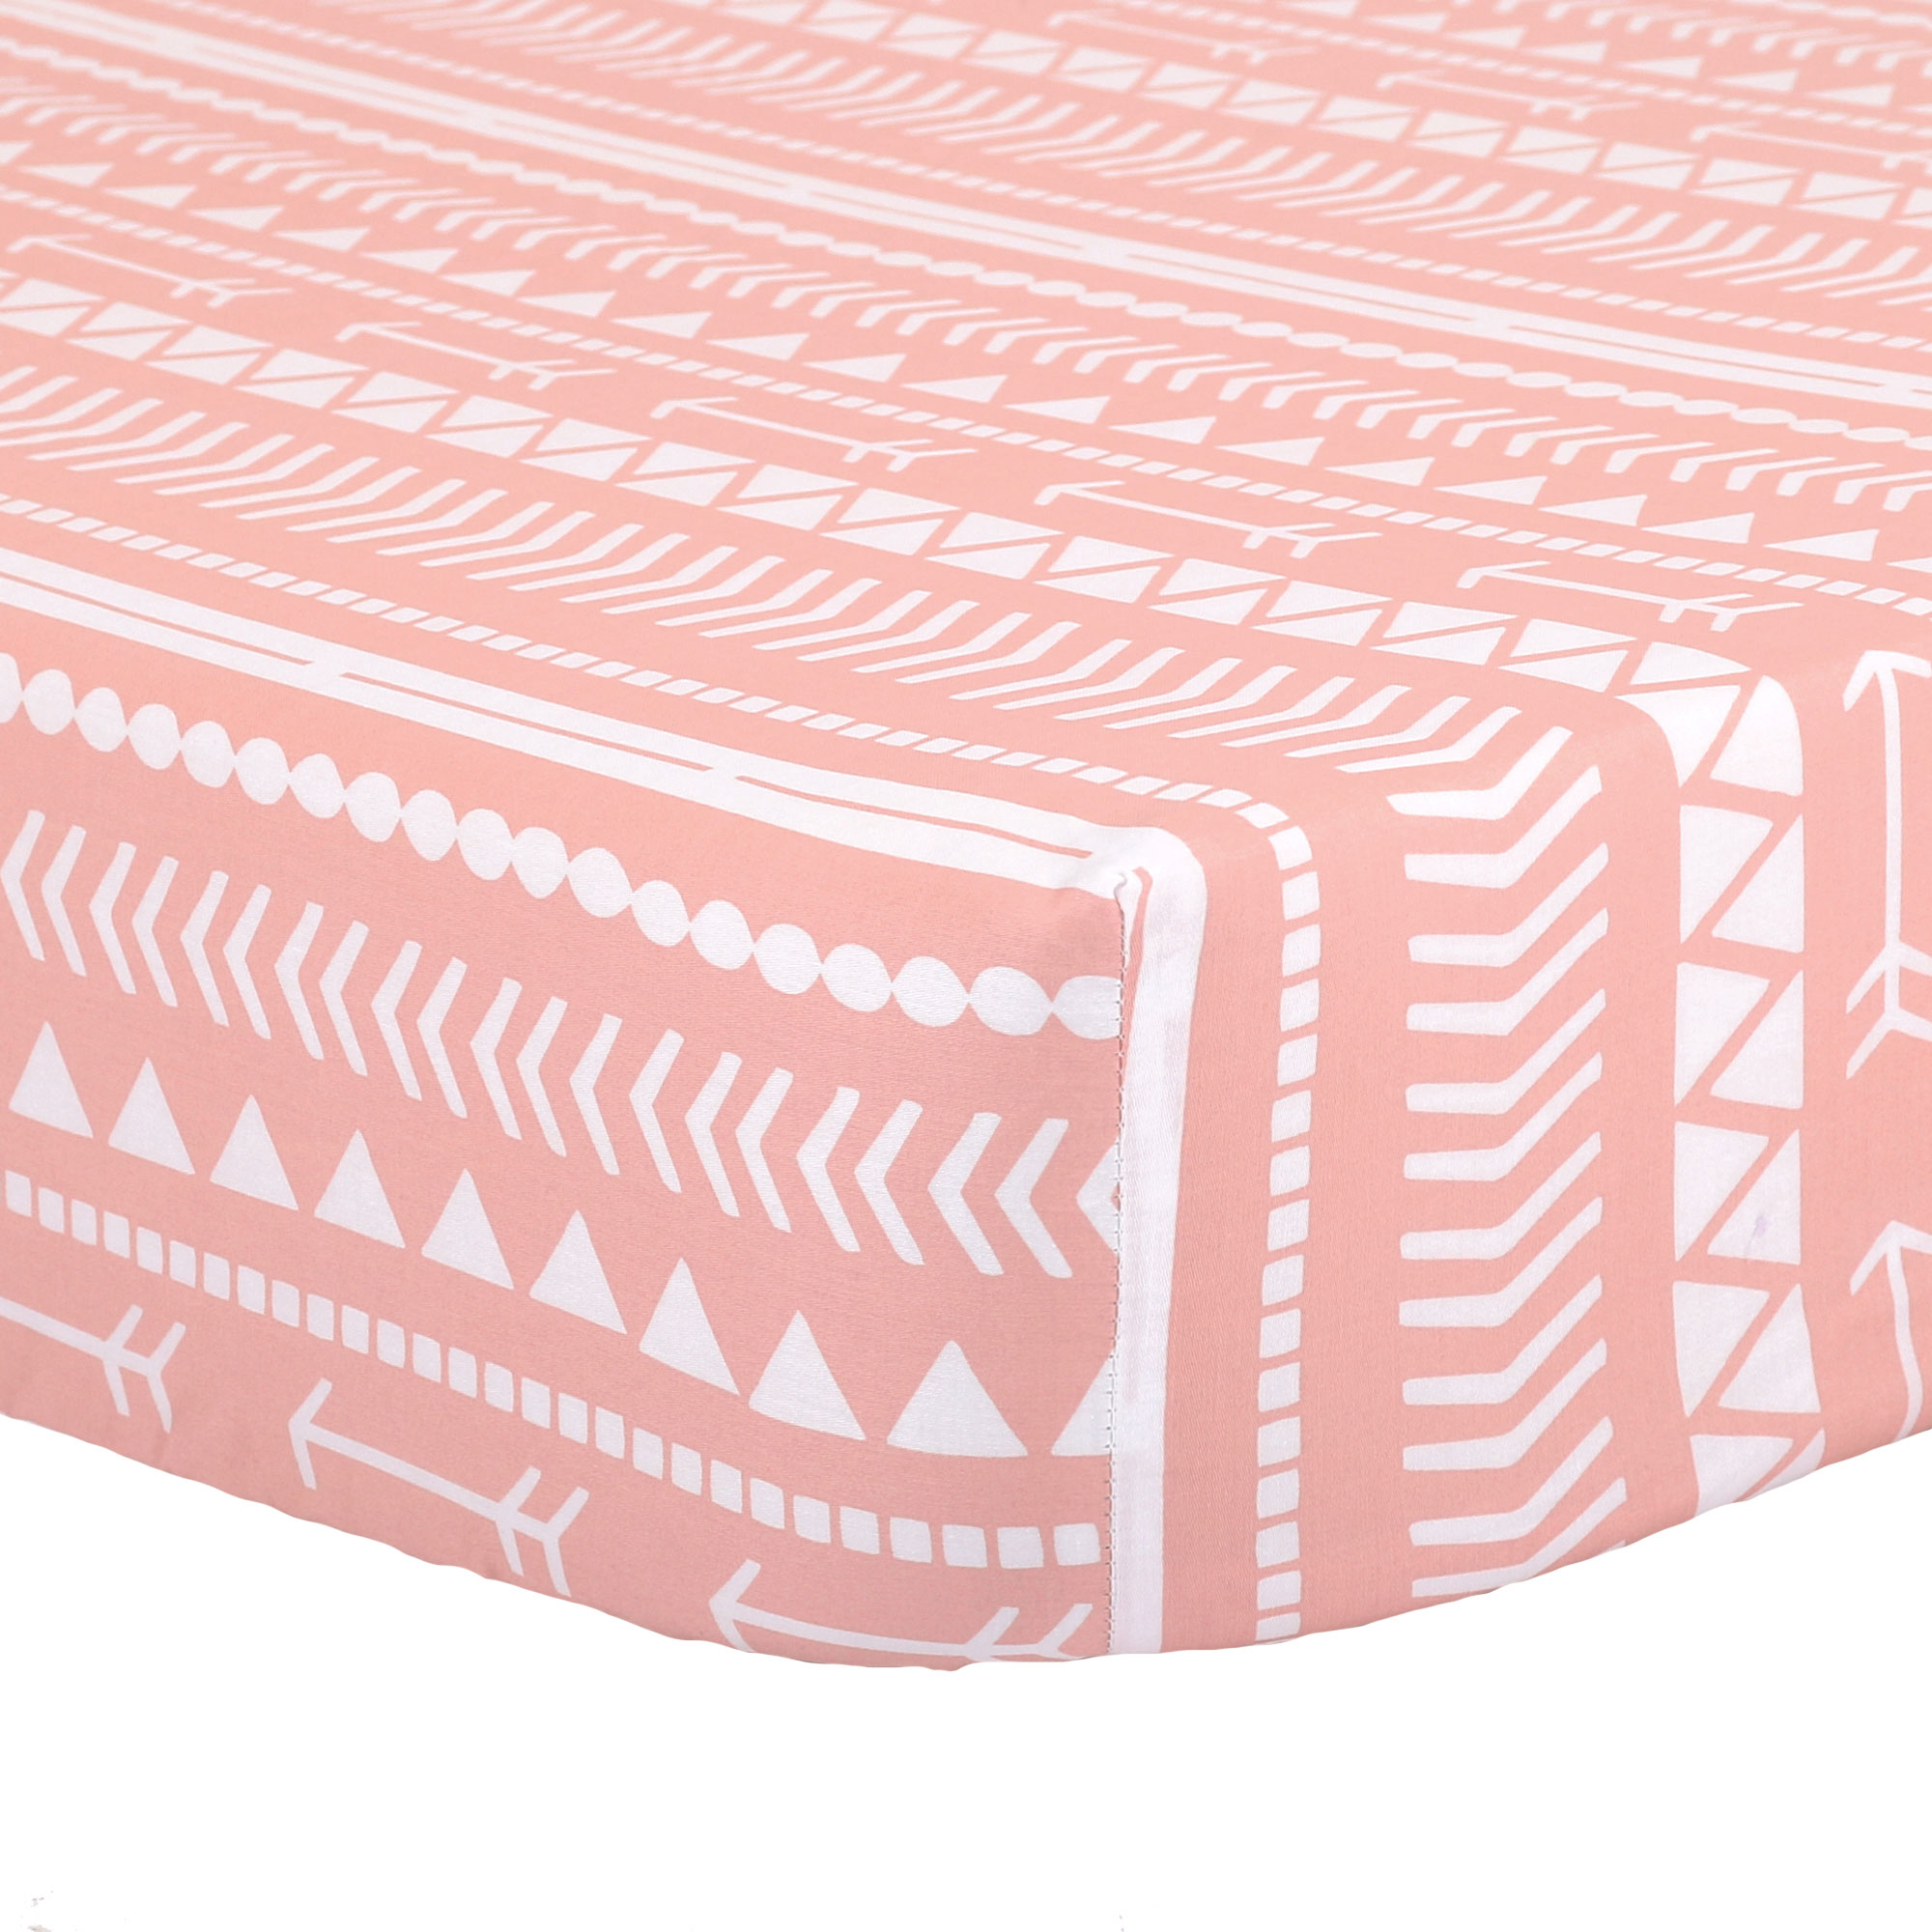 The Peanut Shell Baby Crib Fitted Sheet - Coral Pink Native American Tribal Geometric Print - 100% Cotton Sateen, Fits Standard 52 by 28 Inch Mattress